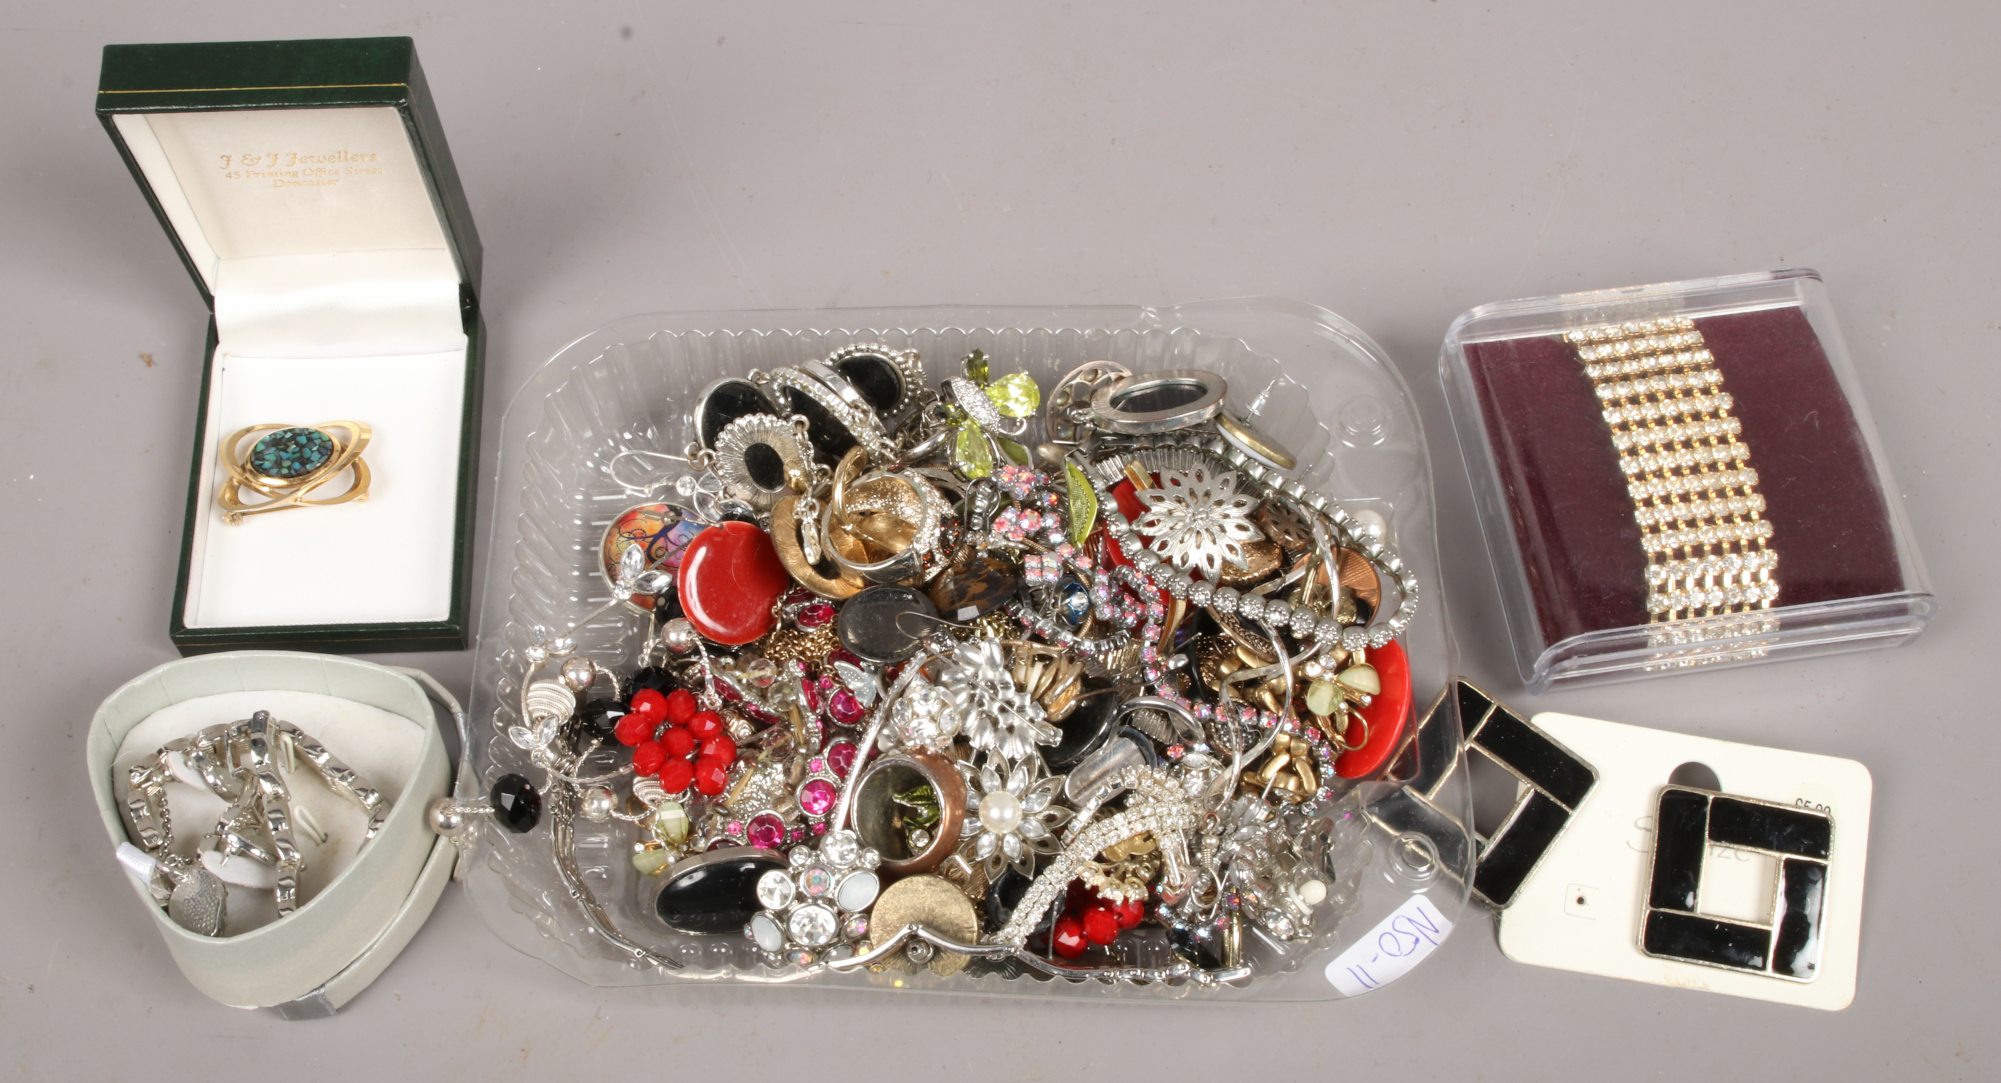 Lot 52 - A quantity of costume jewellery including earrings, bracelets, brooches etc.